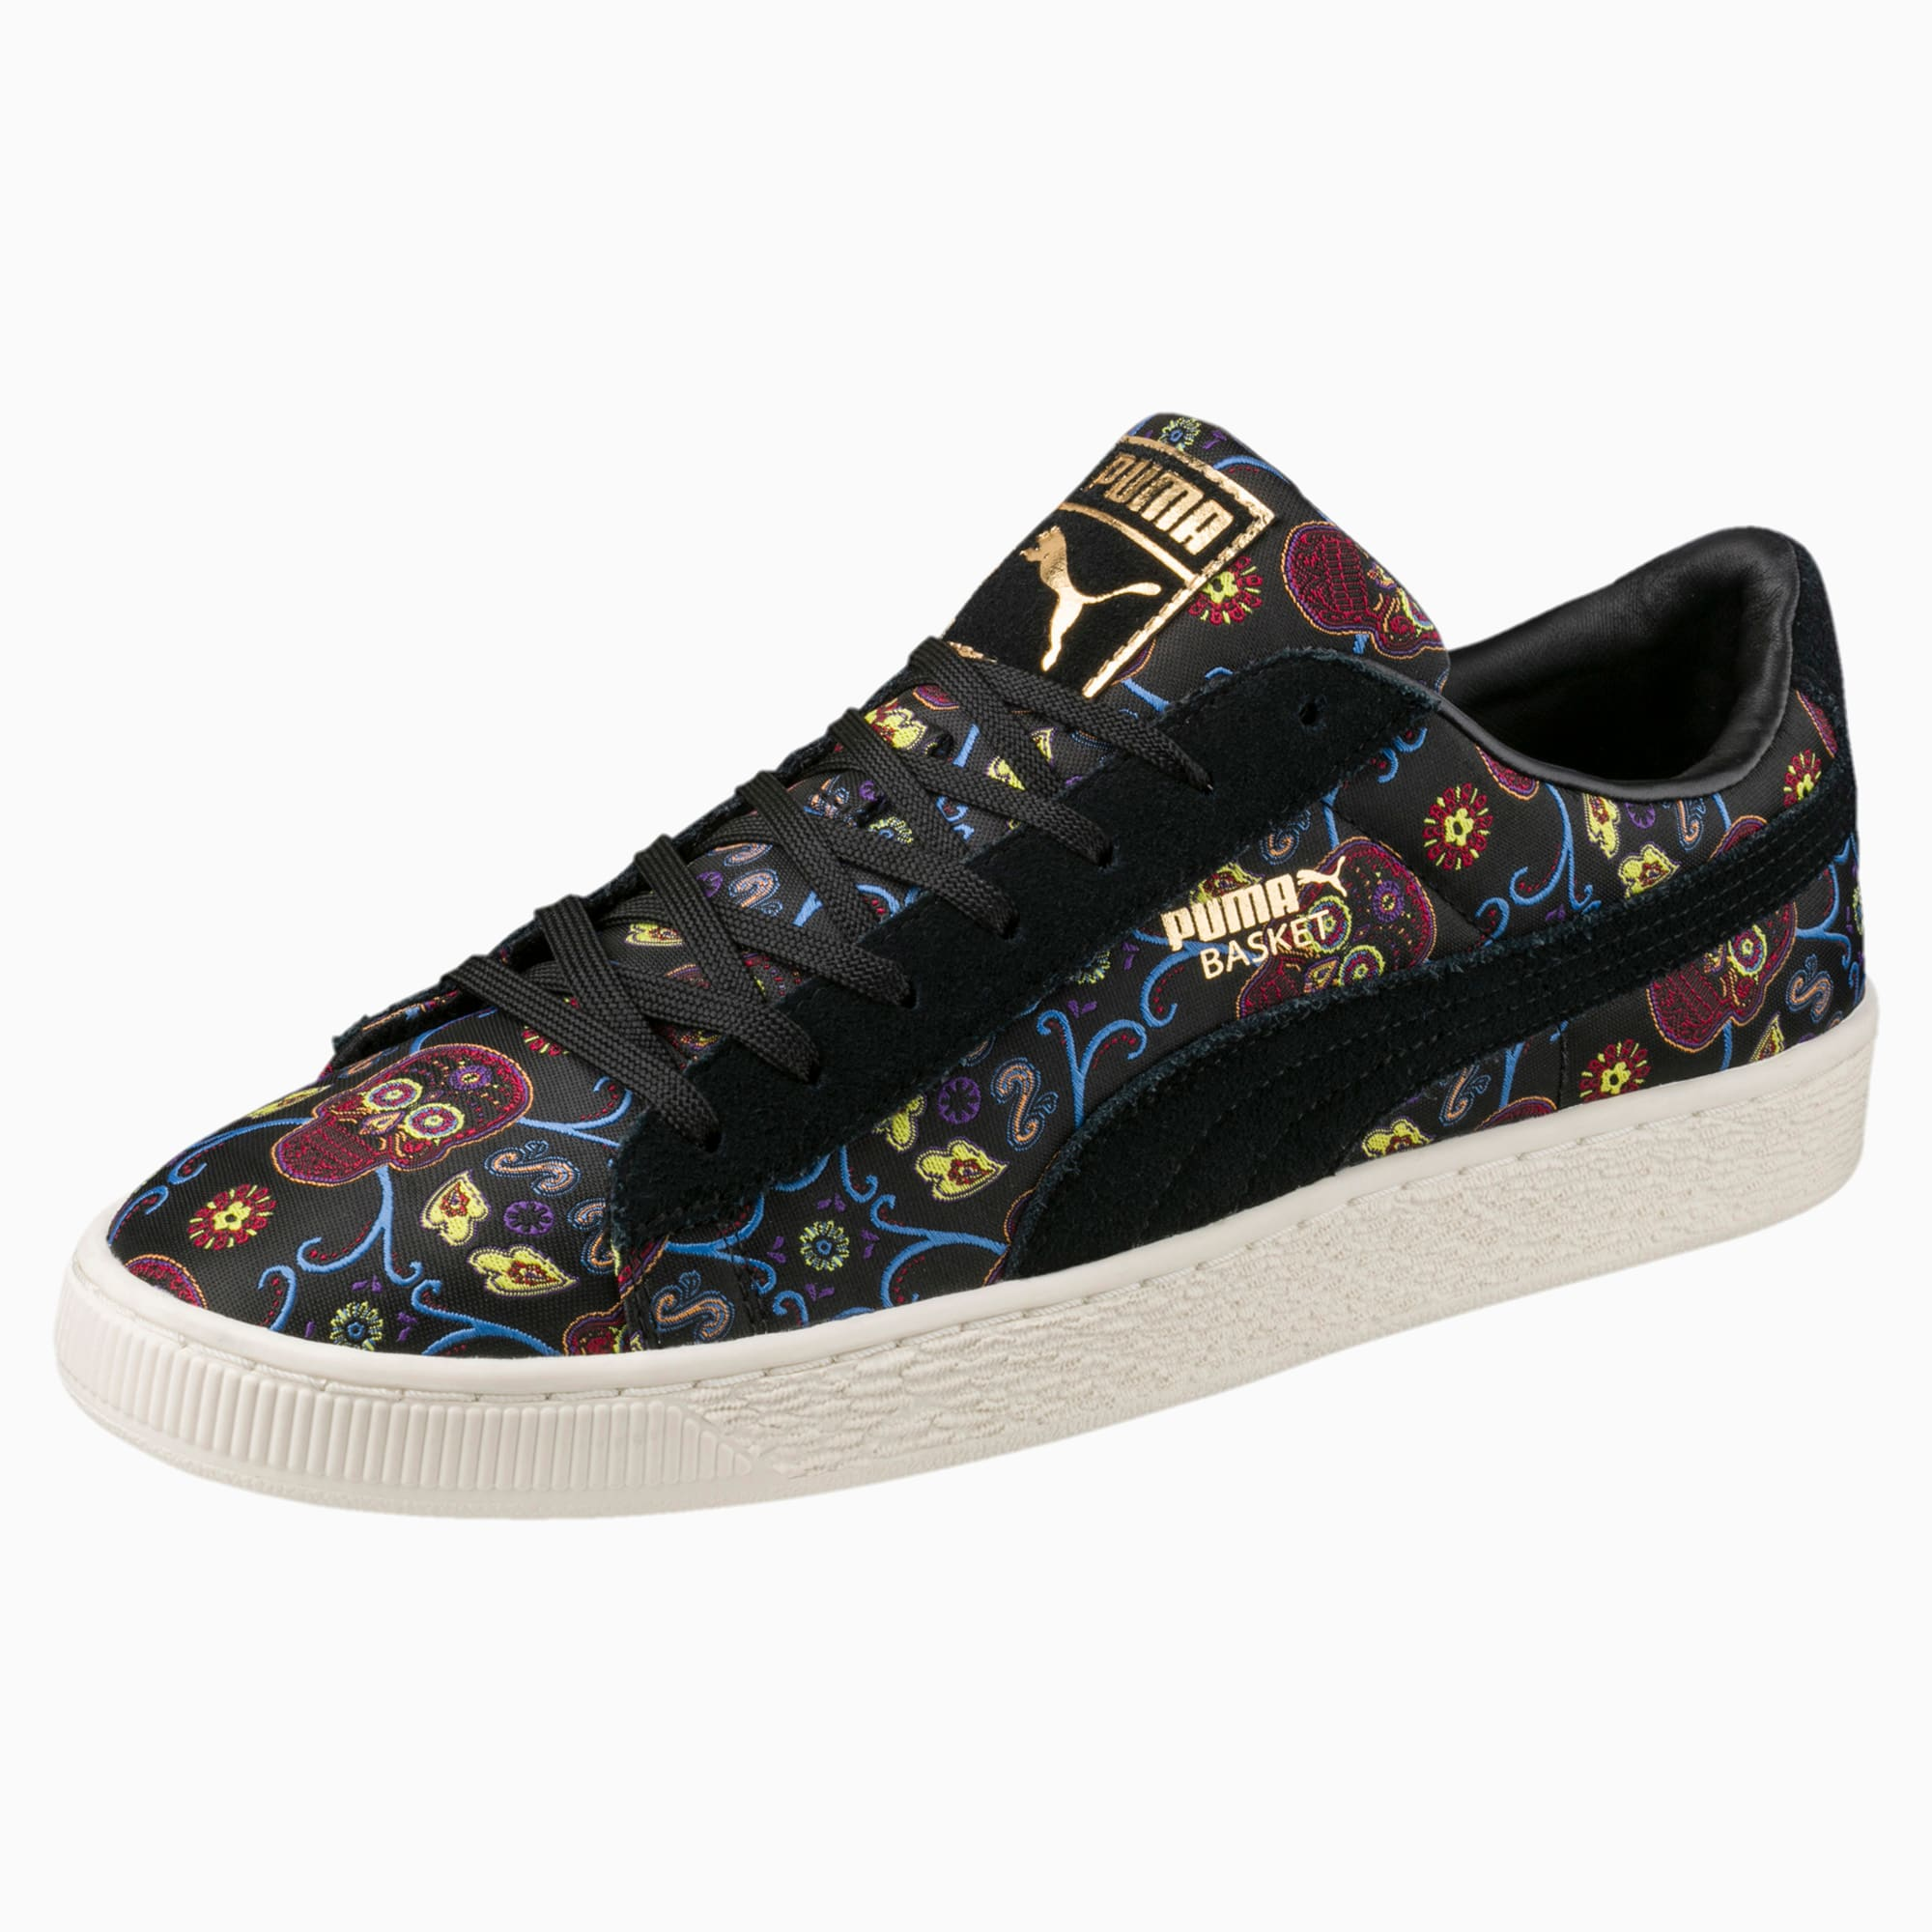 Basket Classic Day Of The Dead Sneakers